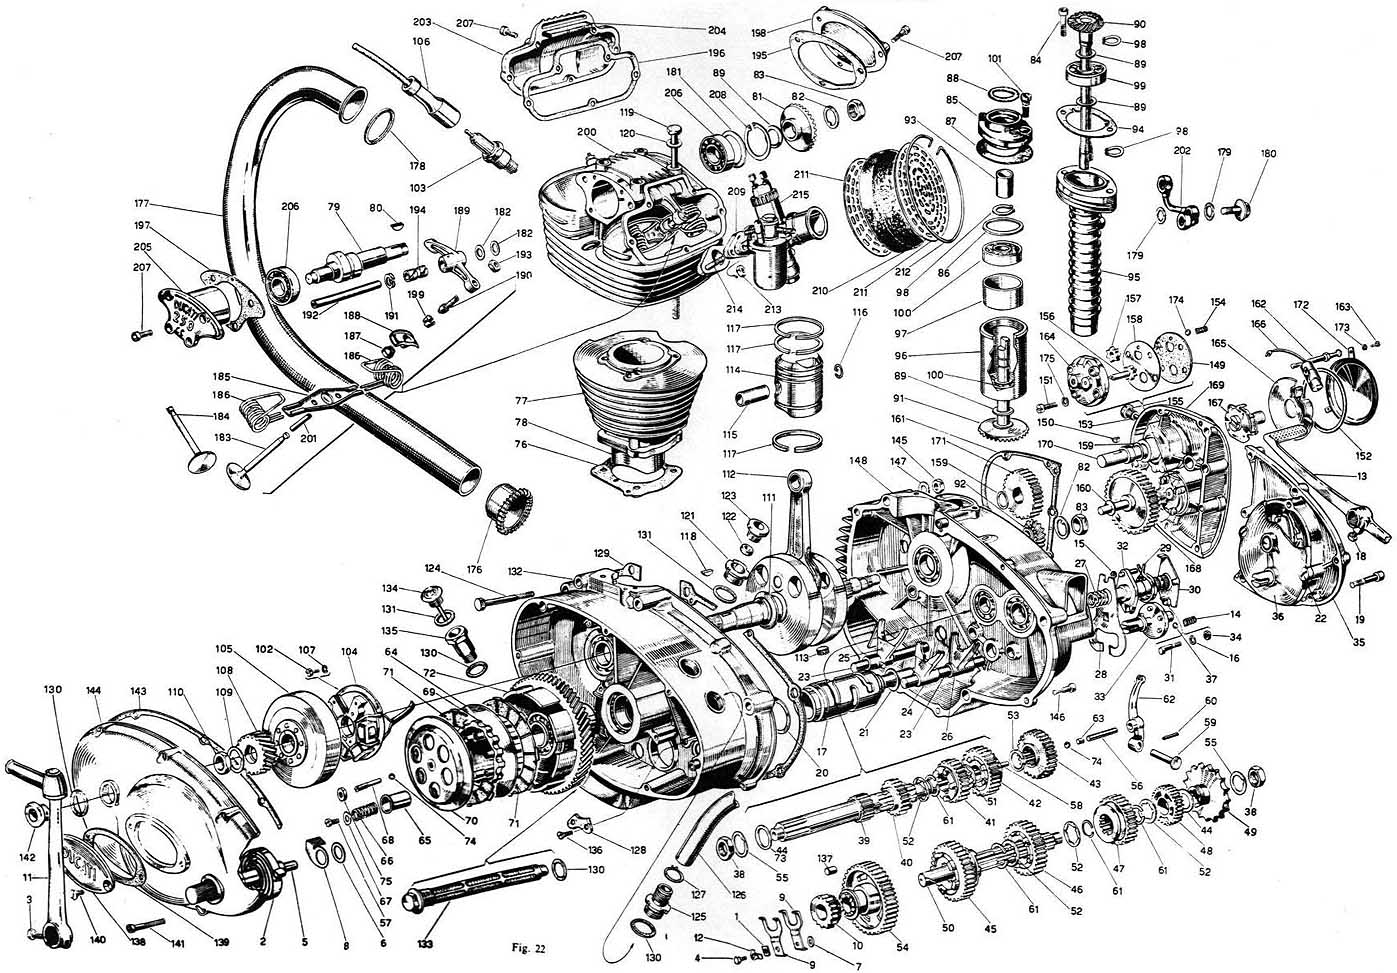 Mahindra New Car In India as well Calypso Troubleshooting additionally Wiring likewise Diagram Of 2012 Fiat 500 Engine besides Tomos A35 Engine. on royal enfield wiring diagram